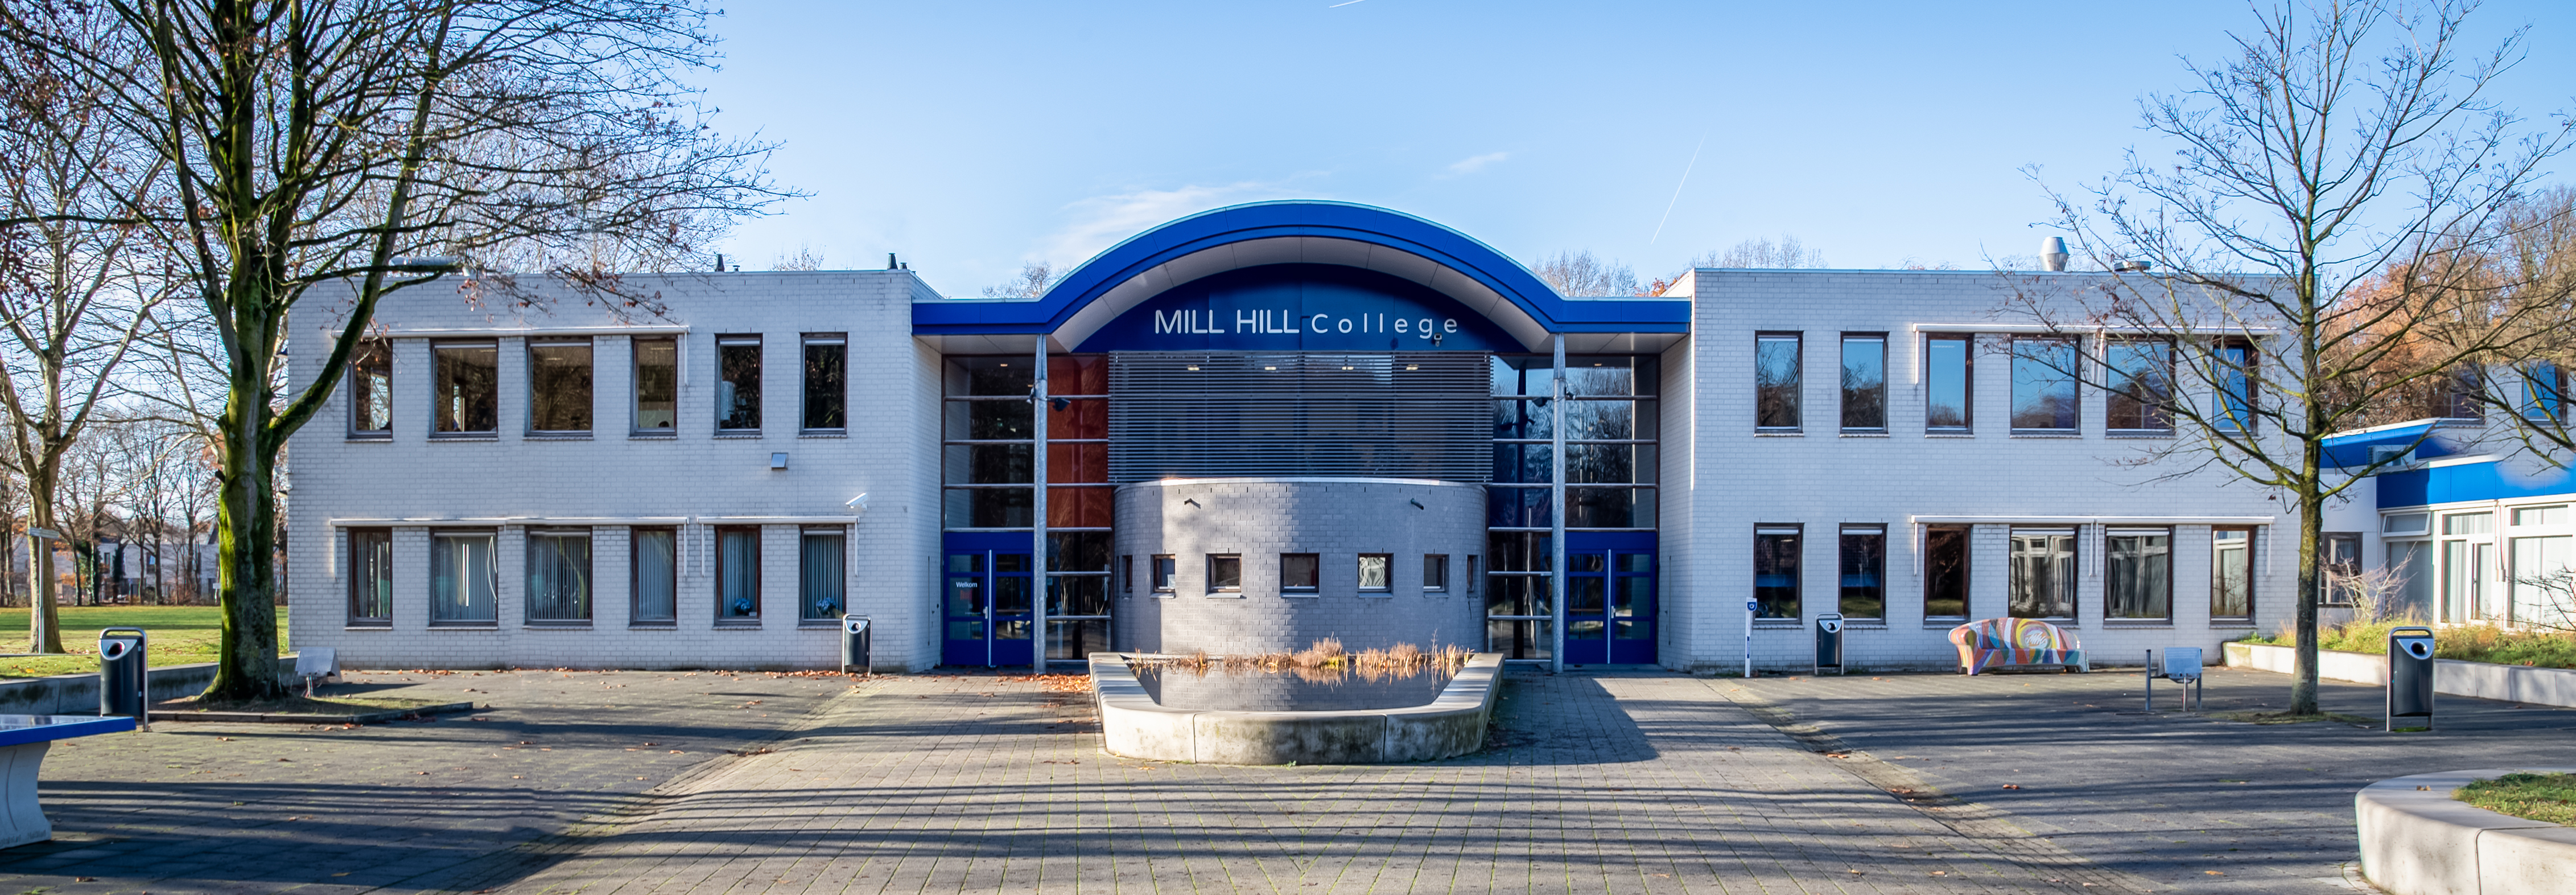 Mill Hill College start in 2019-2020 met versneld vwo